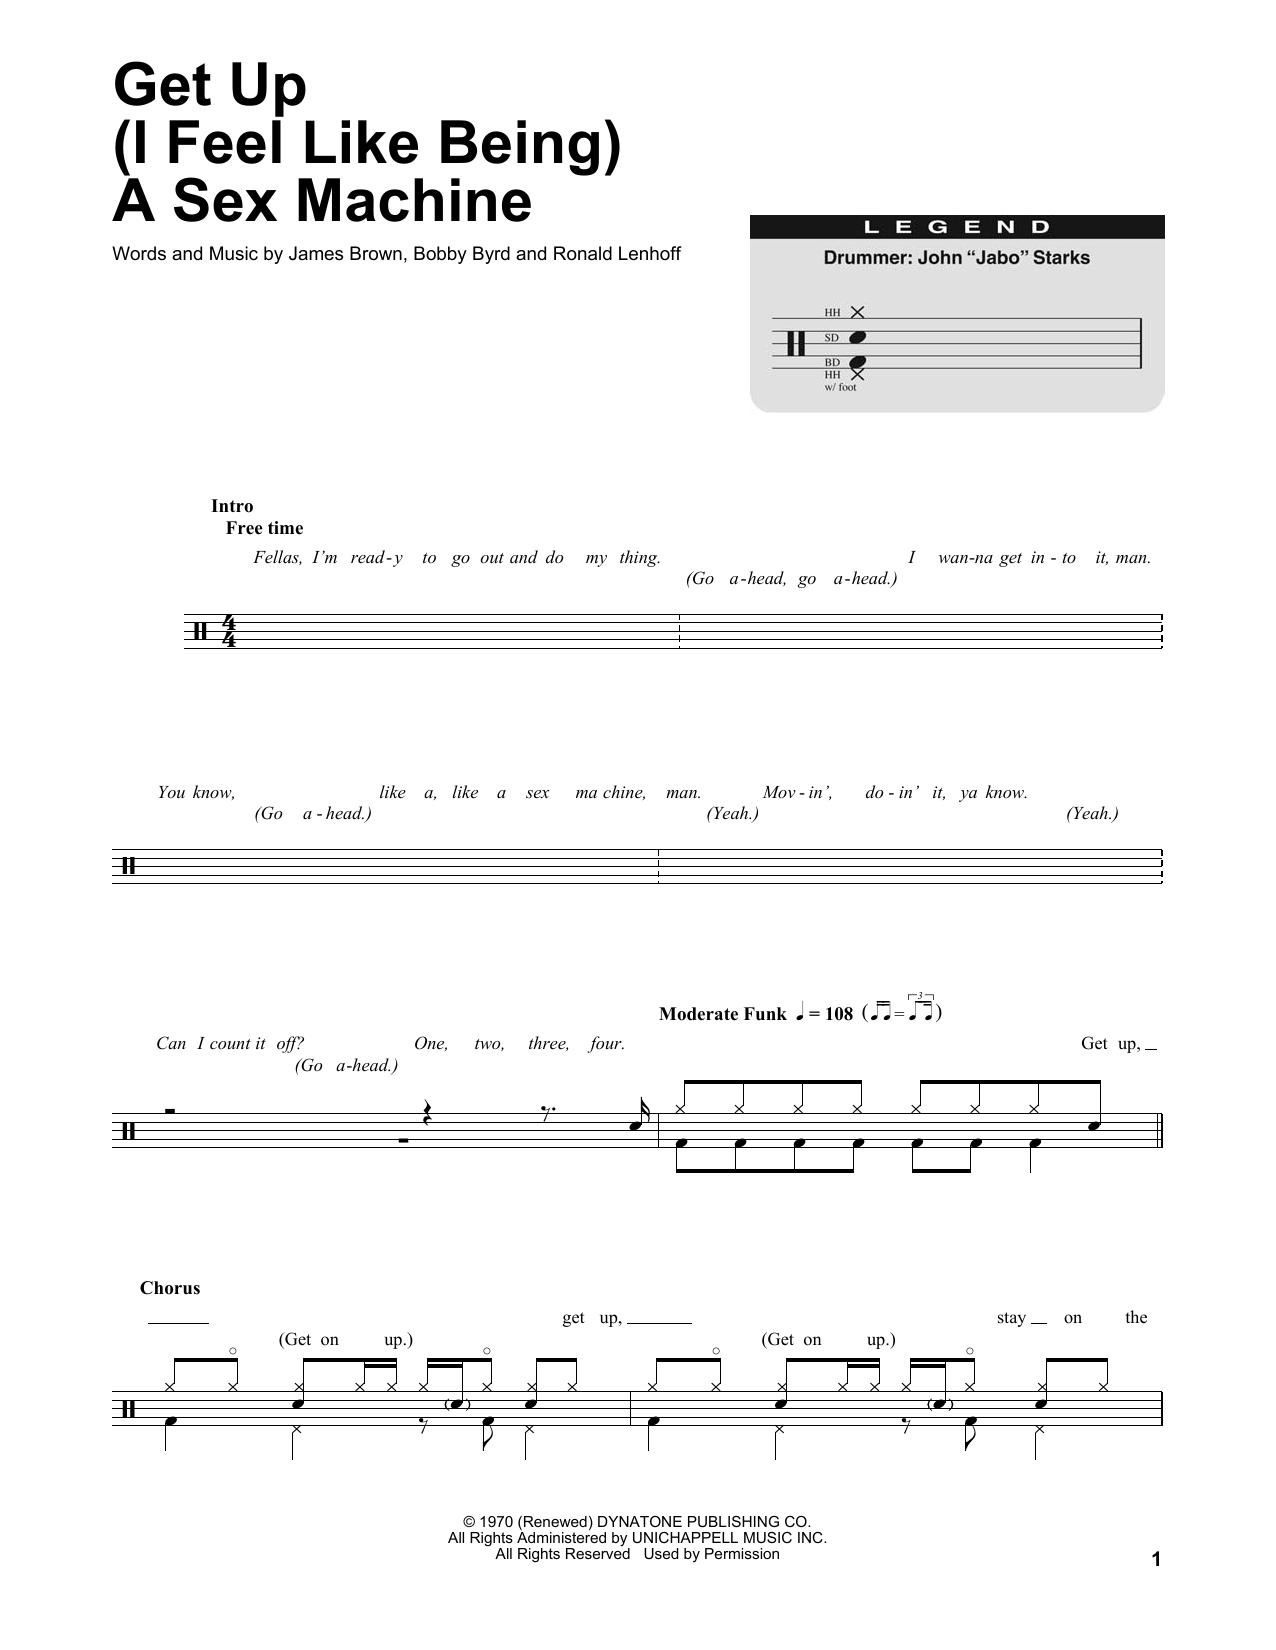 Get Up (I Feel Like Being A Sex Machine) Sheet Music